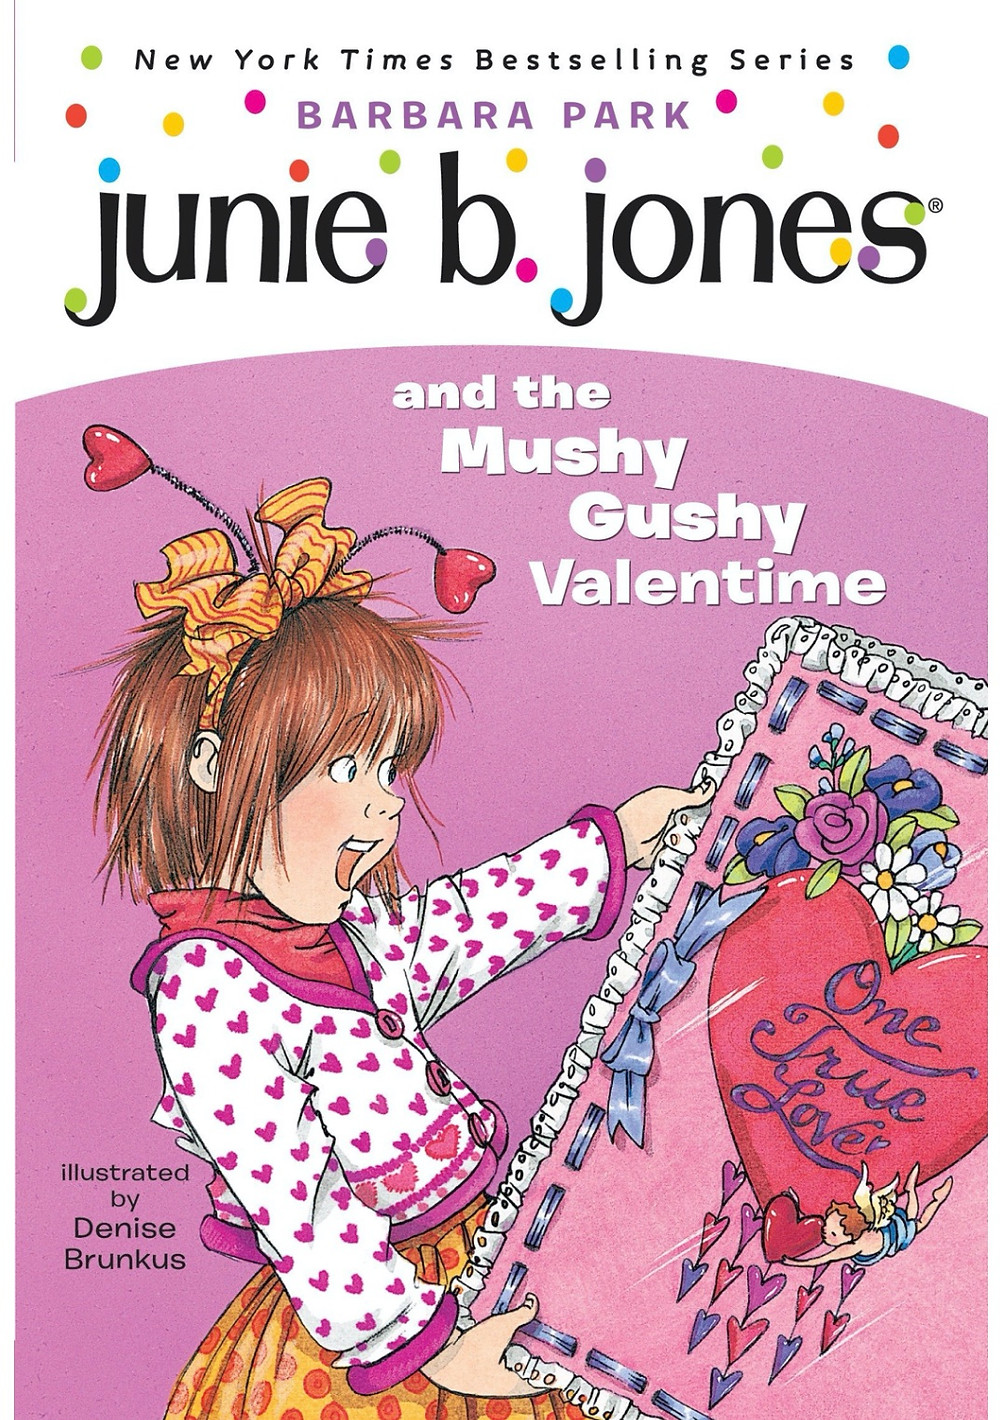 Book cover of junie b. jones and the Mushy Gushy Valentime by Barbara Park shows girl holding super large valentine illustration